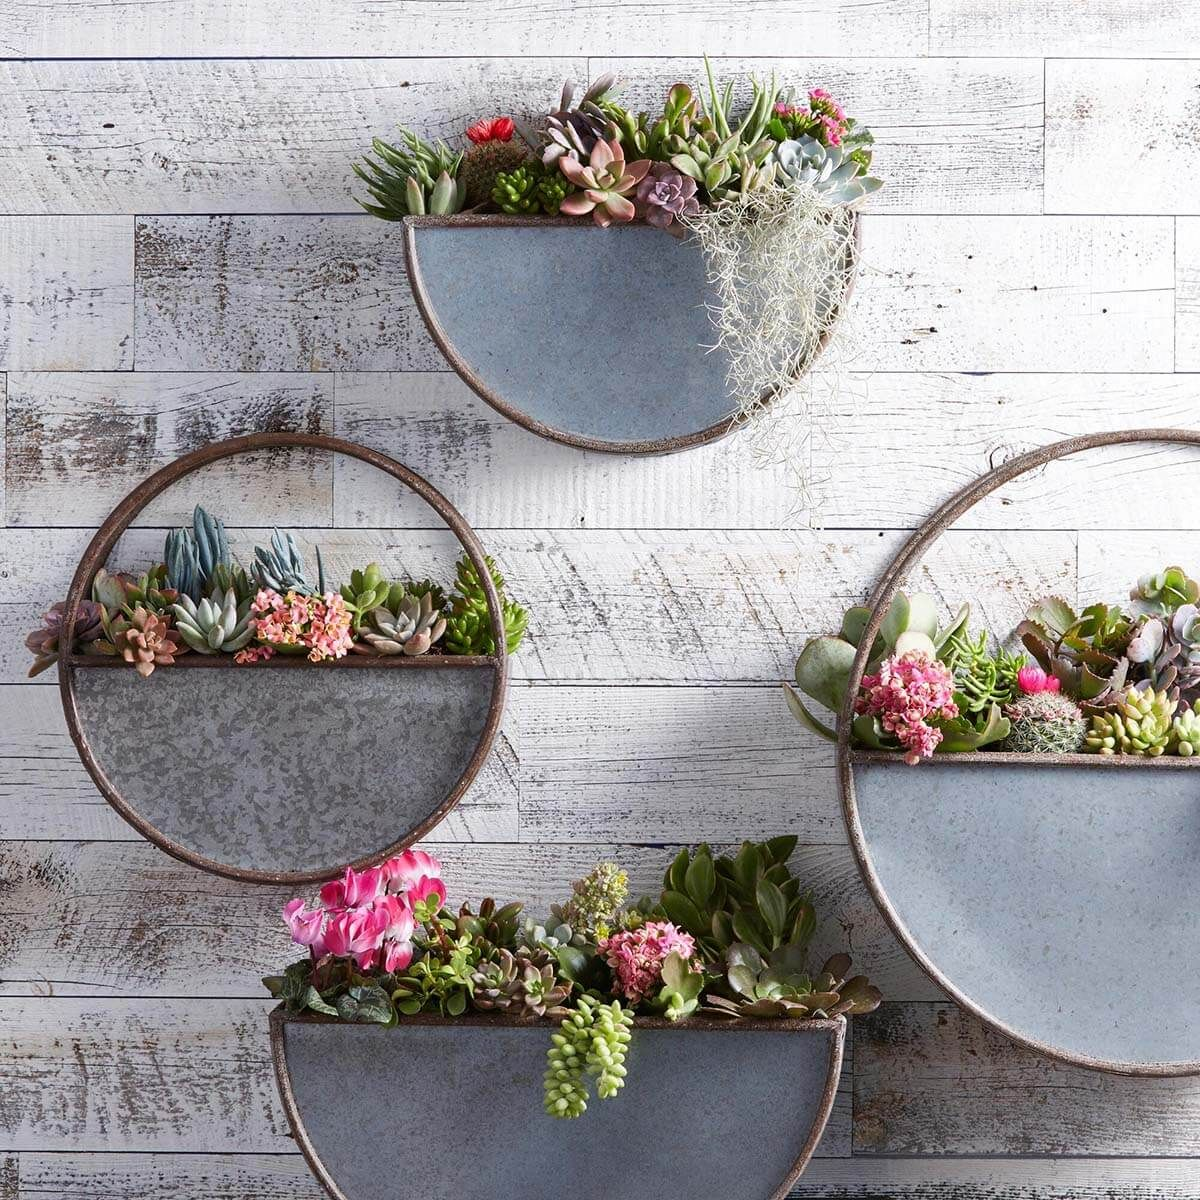 31 Trendy Metal Wall Decor Ideas For Any Area Of Your Home Metal Wall Planters Wall Planter Patio Wall Decor